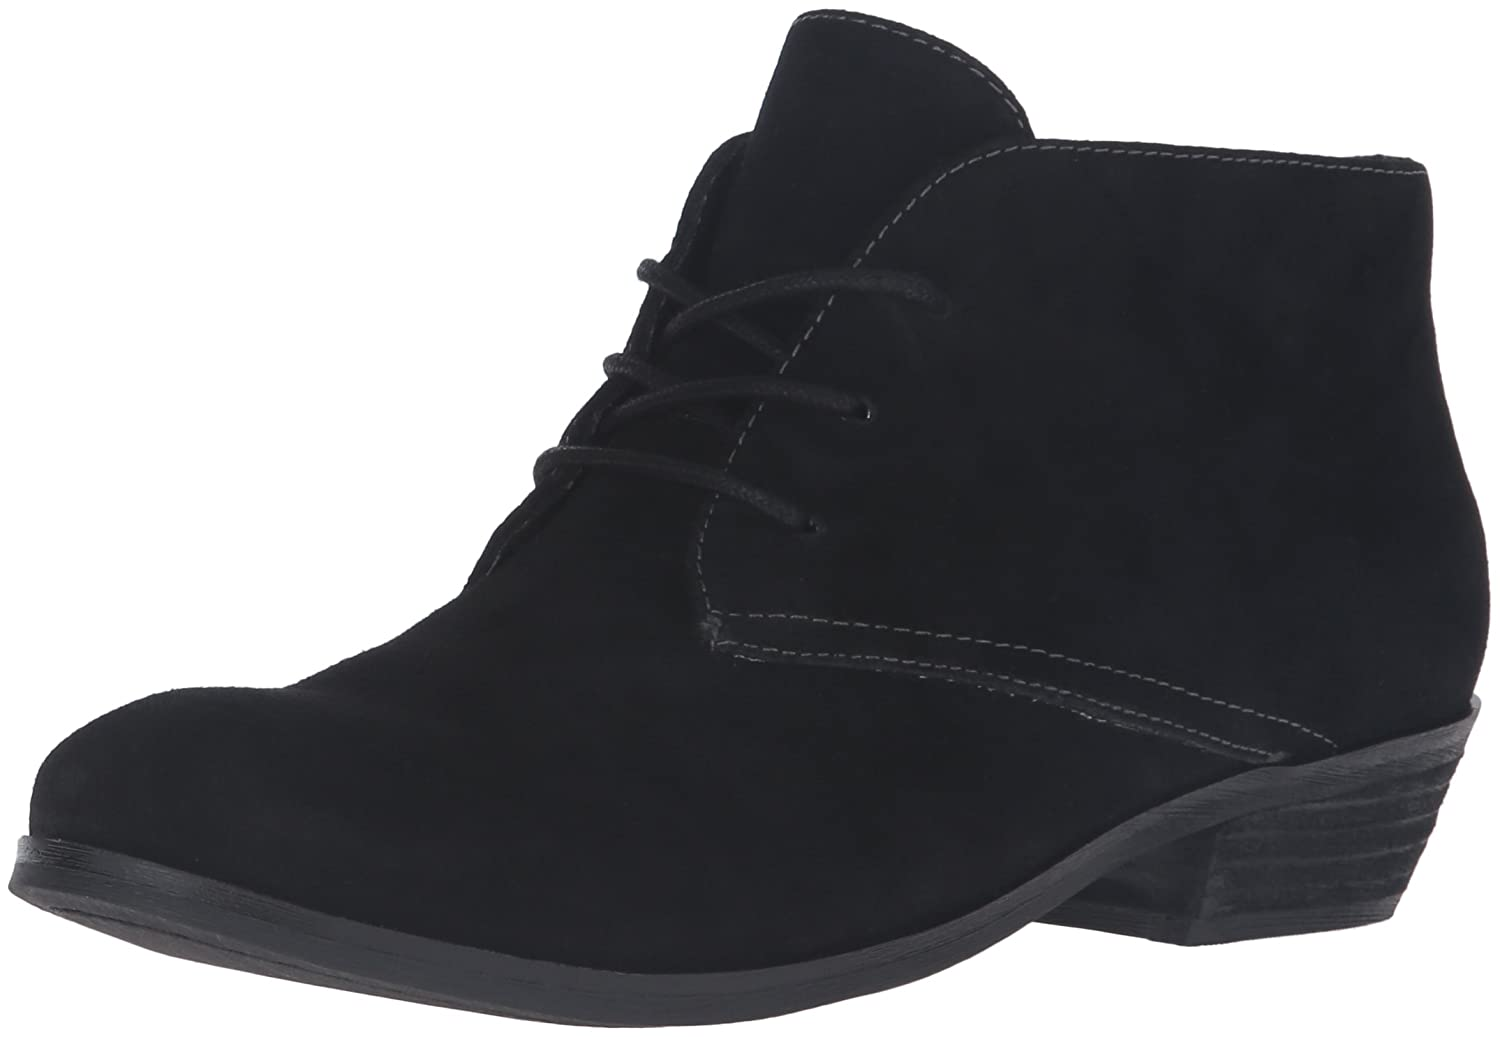 SoftWalk Women's Ramsey Boot B019QMJSLE 9.5 B(M) US|Black Suede